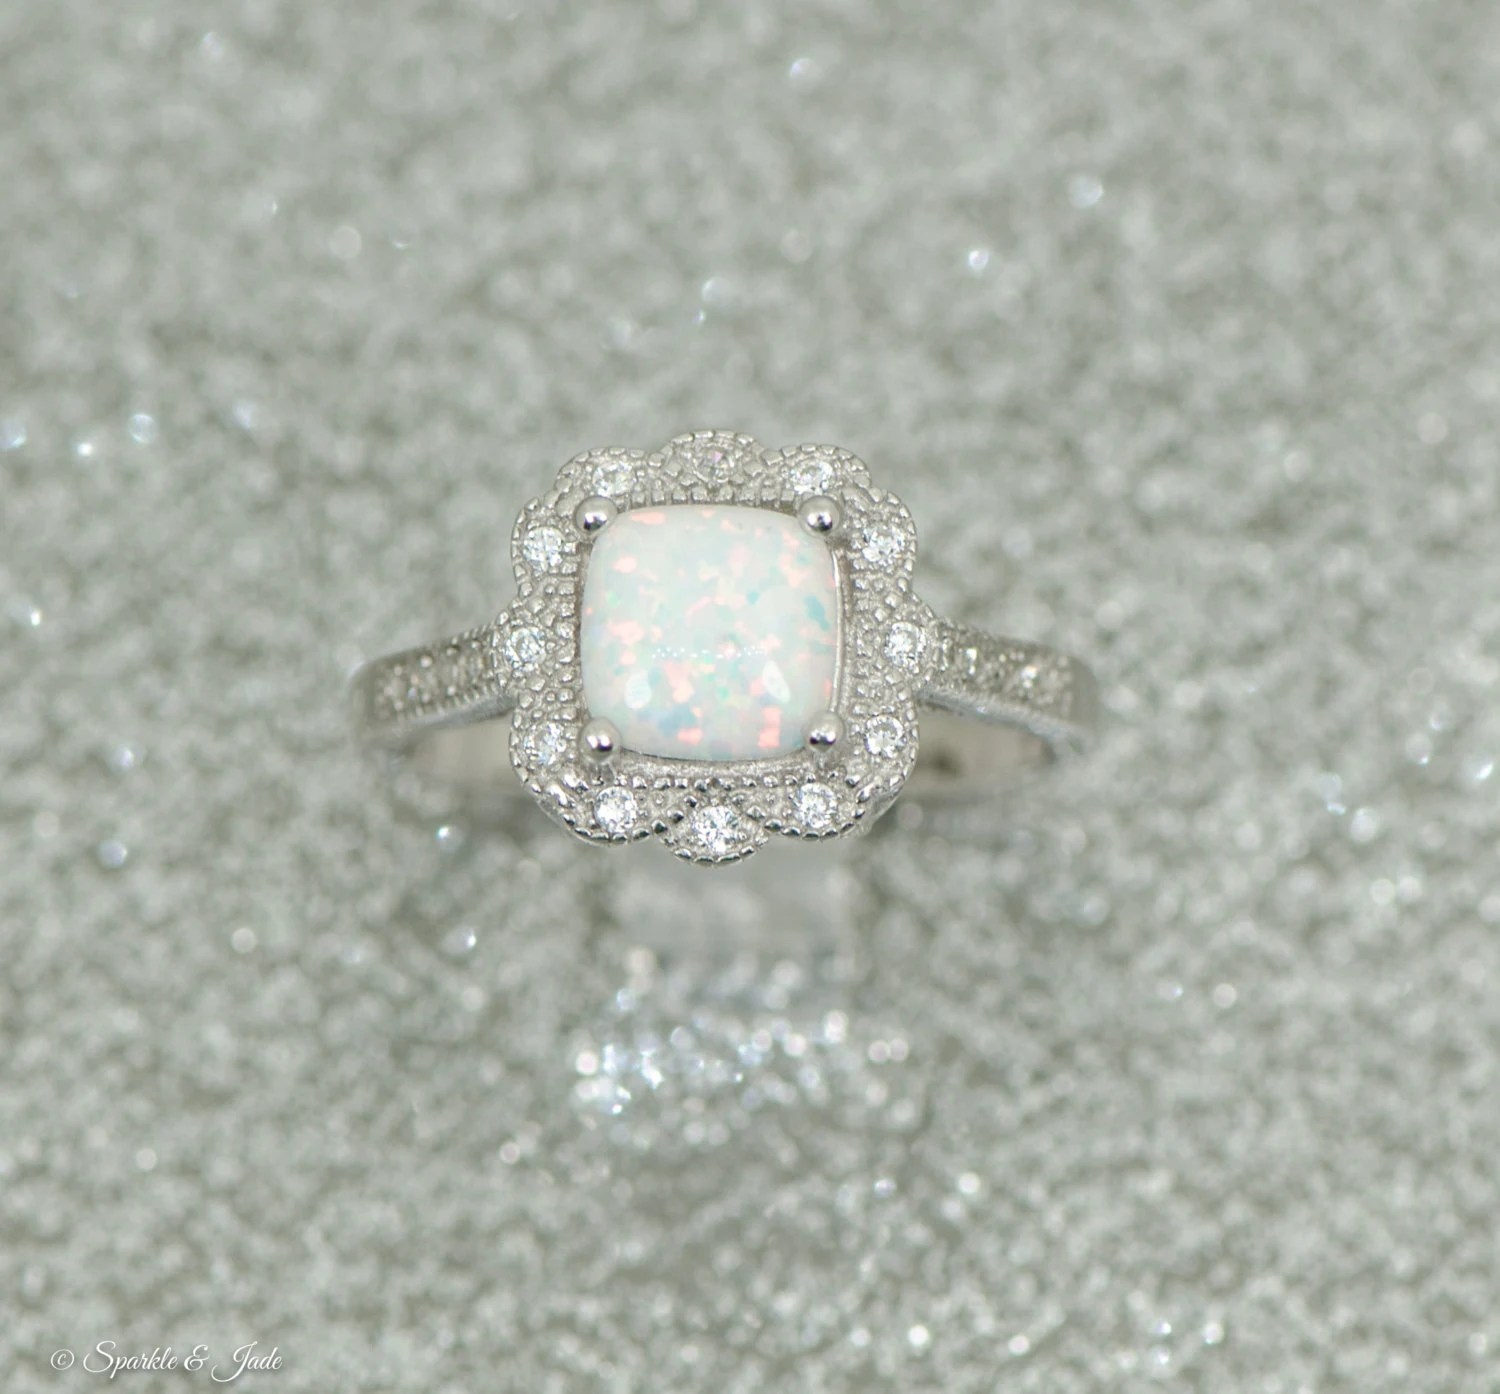 Sterling Silver Cushion Cut Opal Floral Halo Ring by